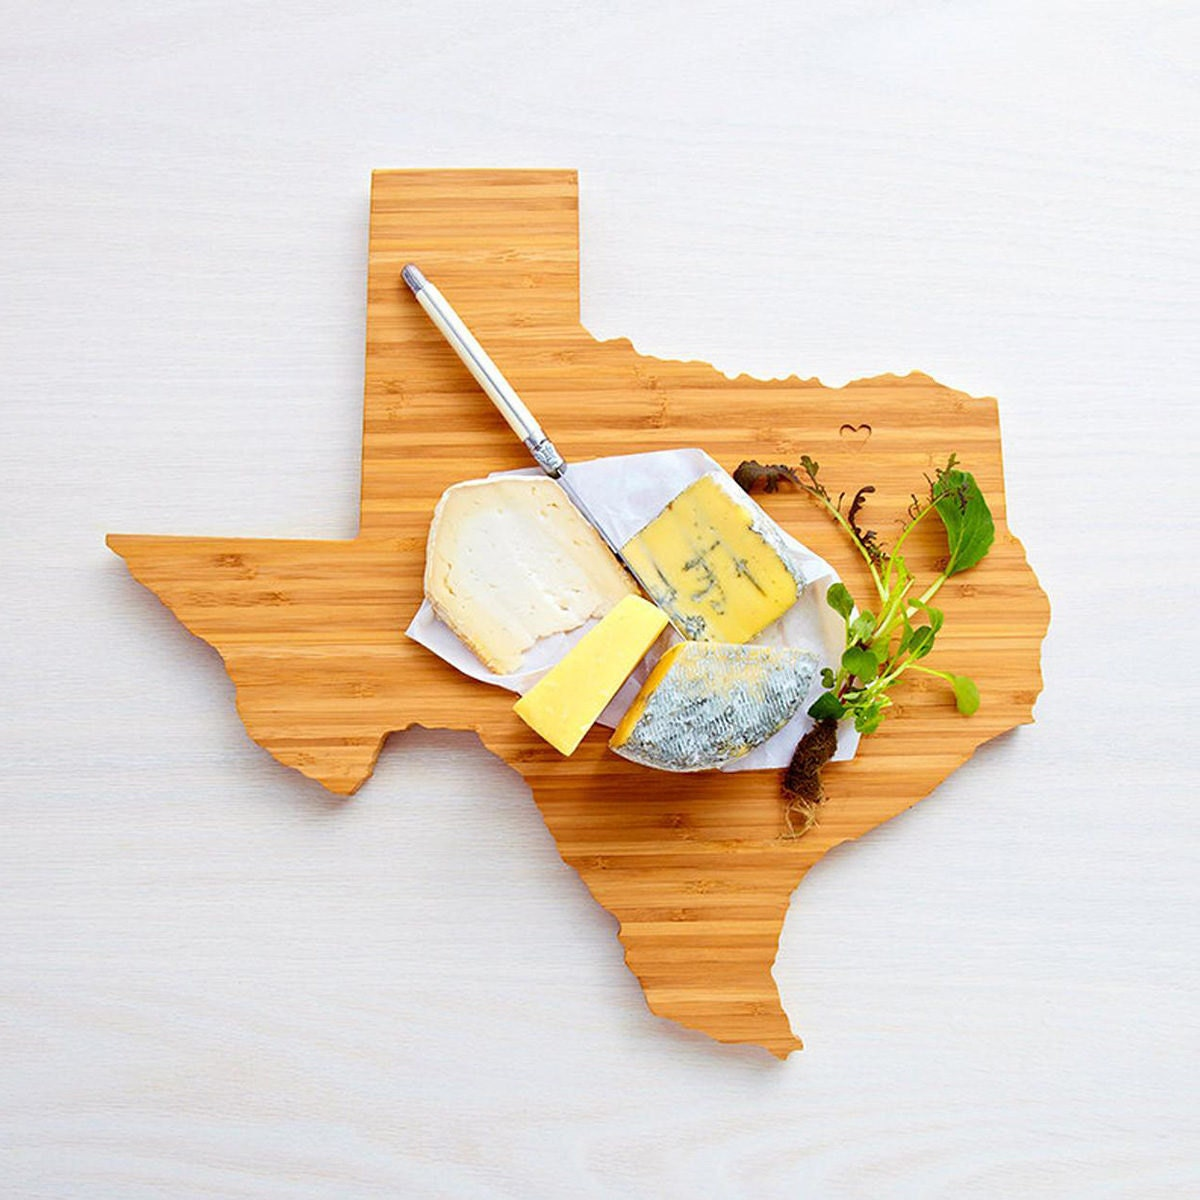 State-shaped cutting board from Etsy